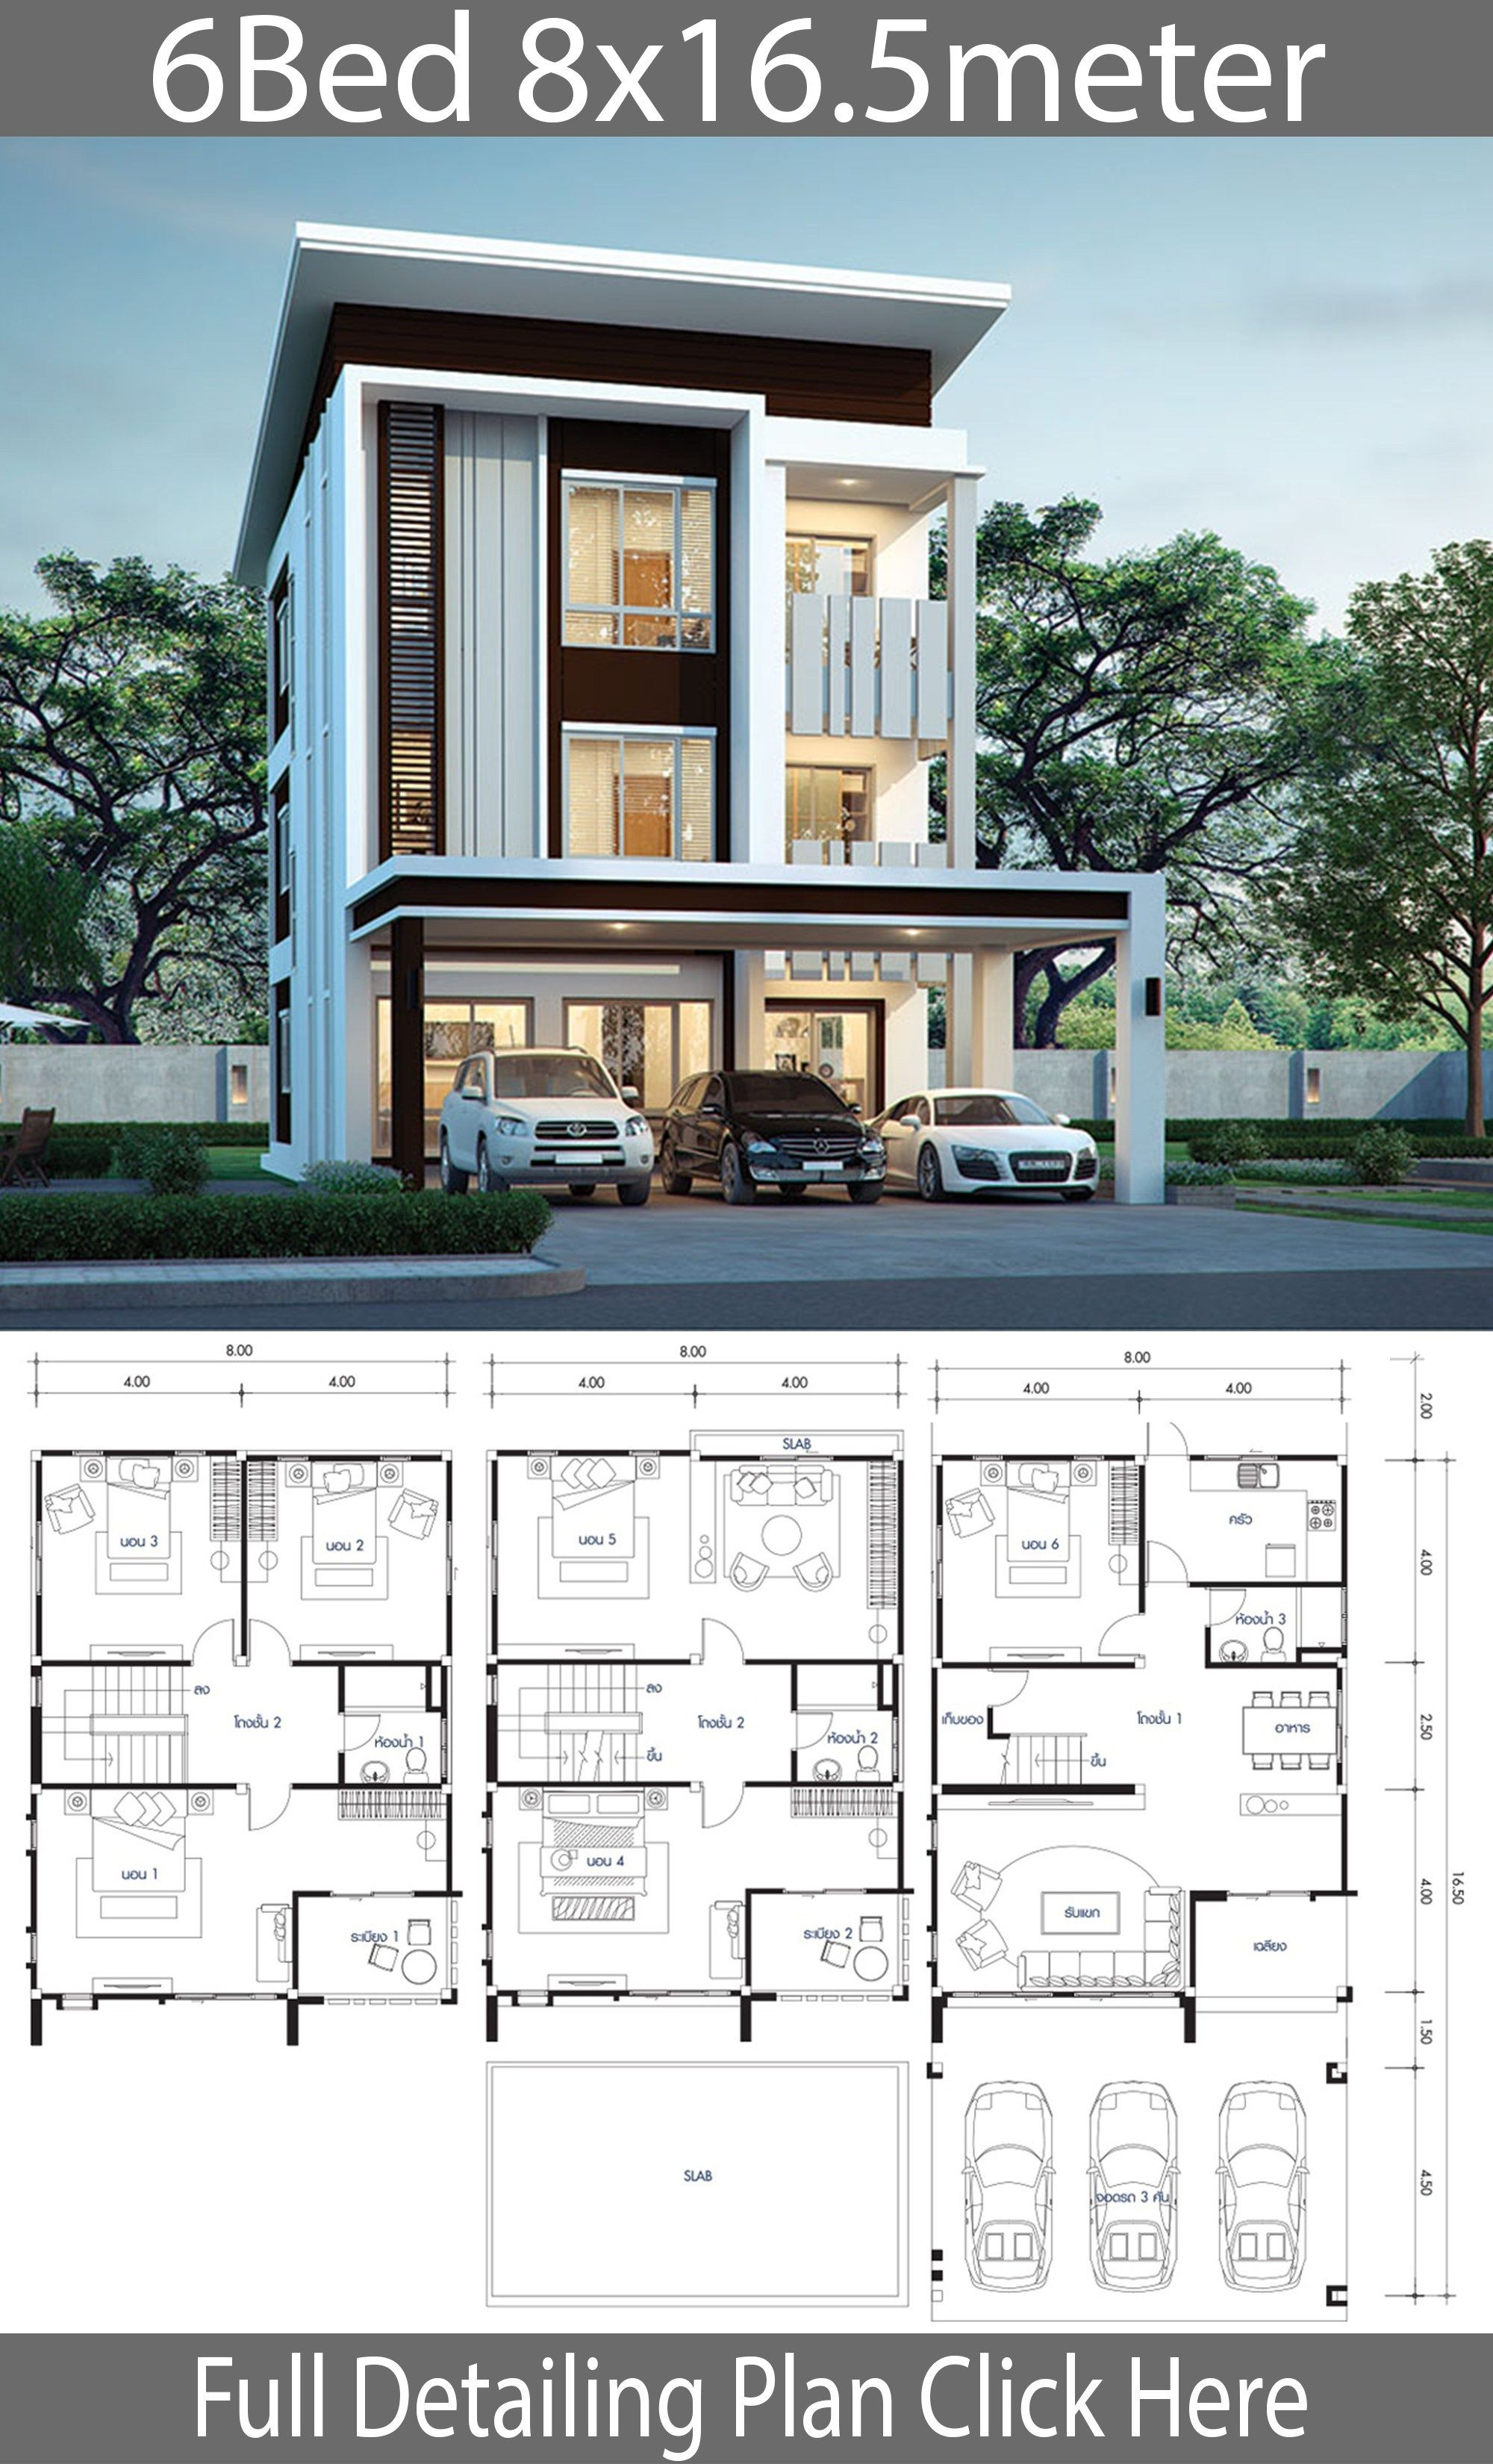 House Design Plan 8x16 5m With 6 Bedrooms Home Design With Plan House Construction Plan Duplex House Design Modern House Plans